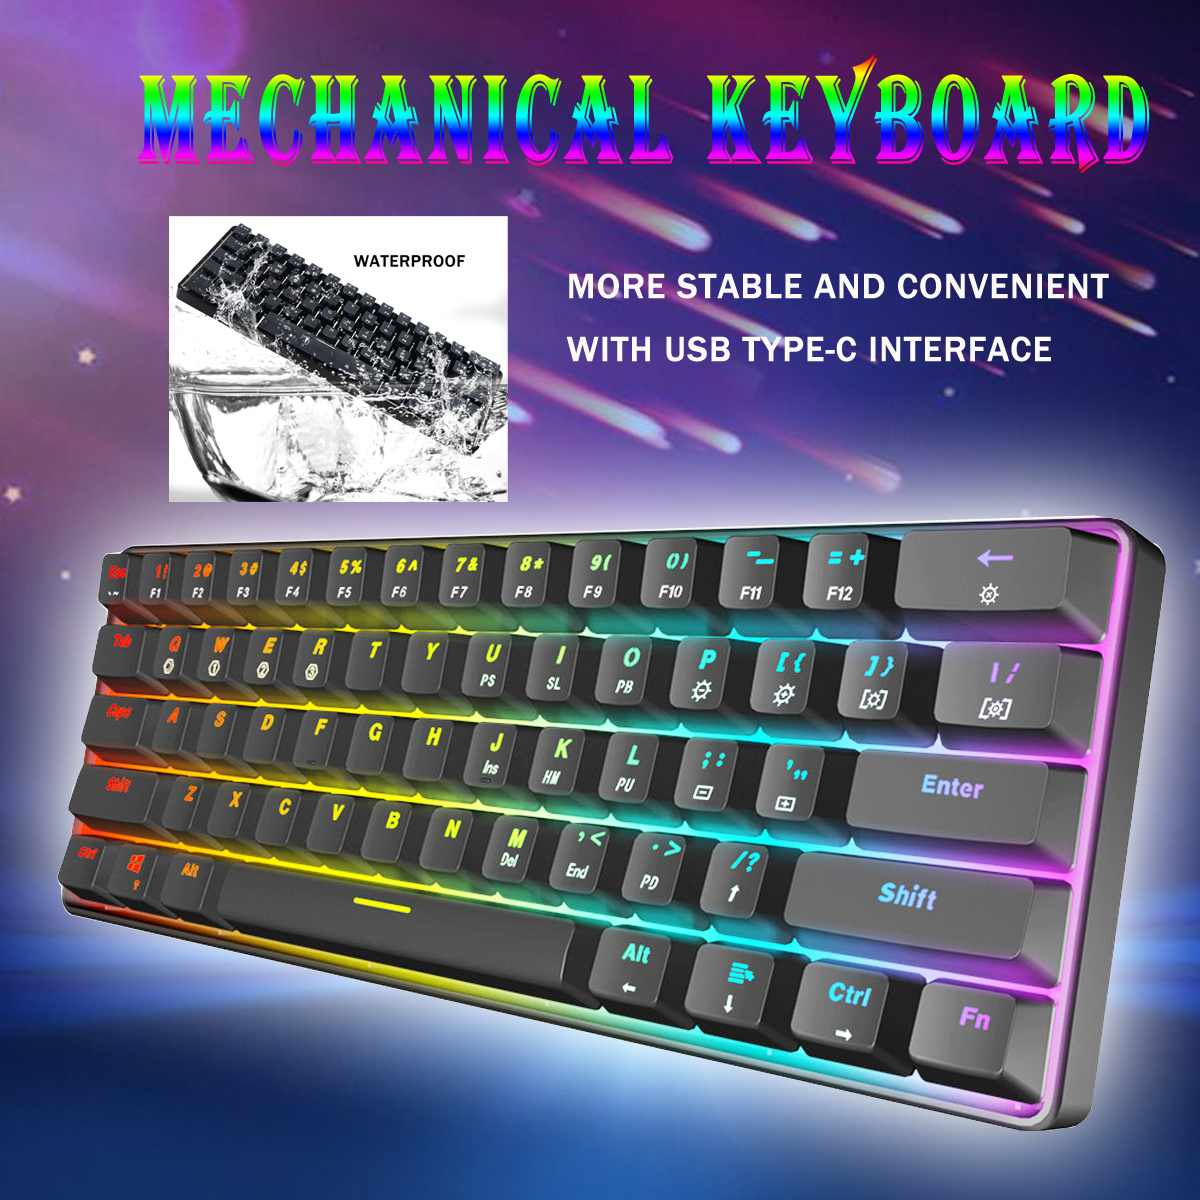 Gateron Switch RGB Game Mechanical Keyboard Optical Axis Can Be Inserted Cable Mechanical Axis 61 key gamesGateron Switch RGB Game Mechanical Keyboard Optical Axis Can Be Inserted Cable Mechanical Axis 61 key games